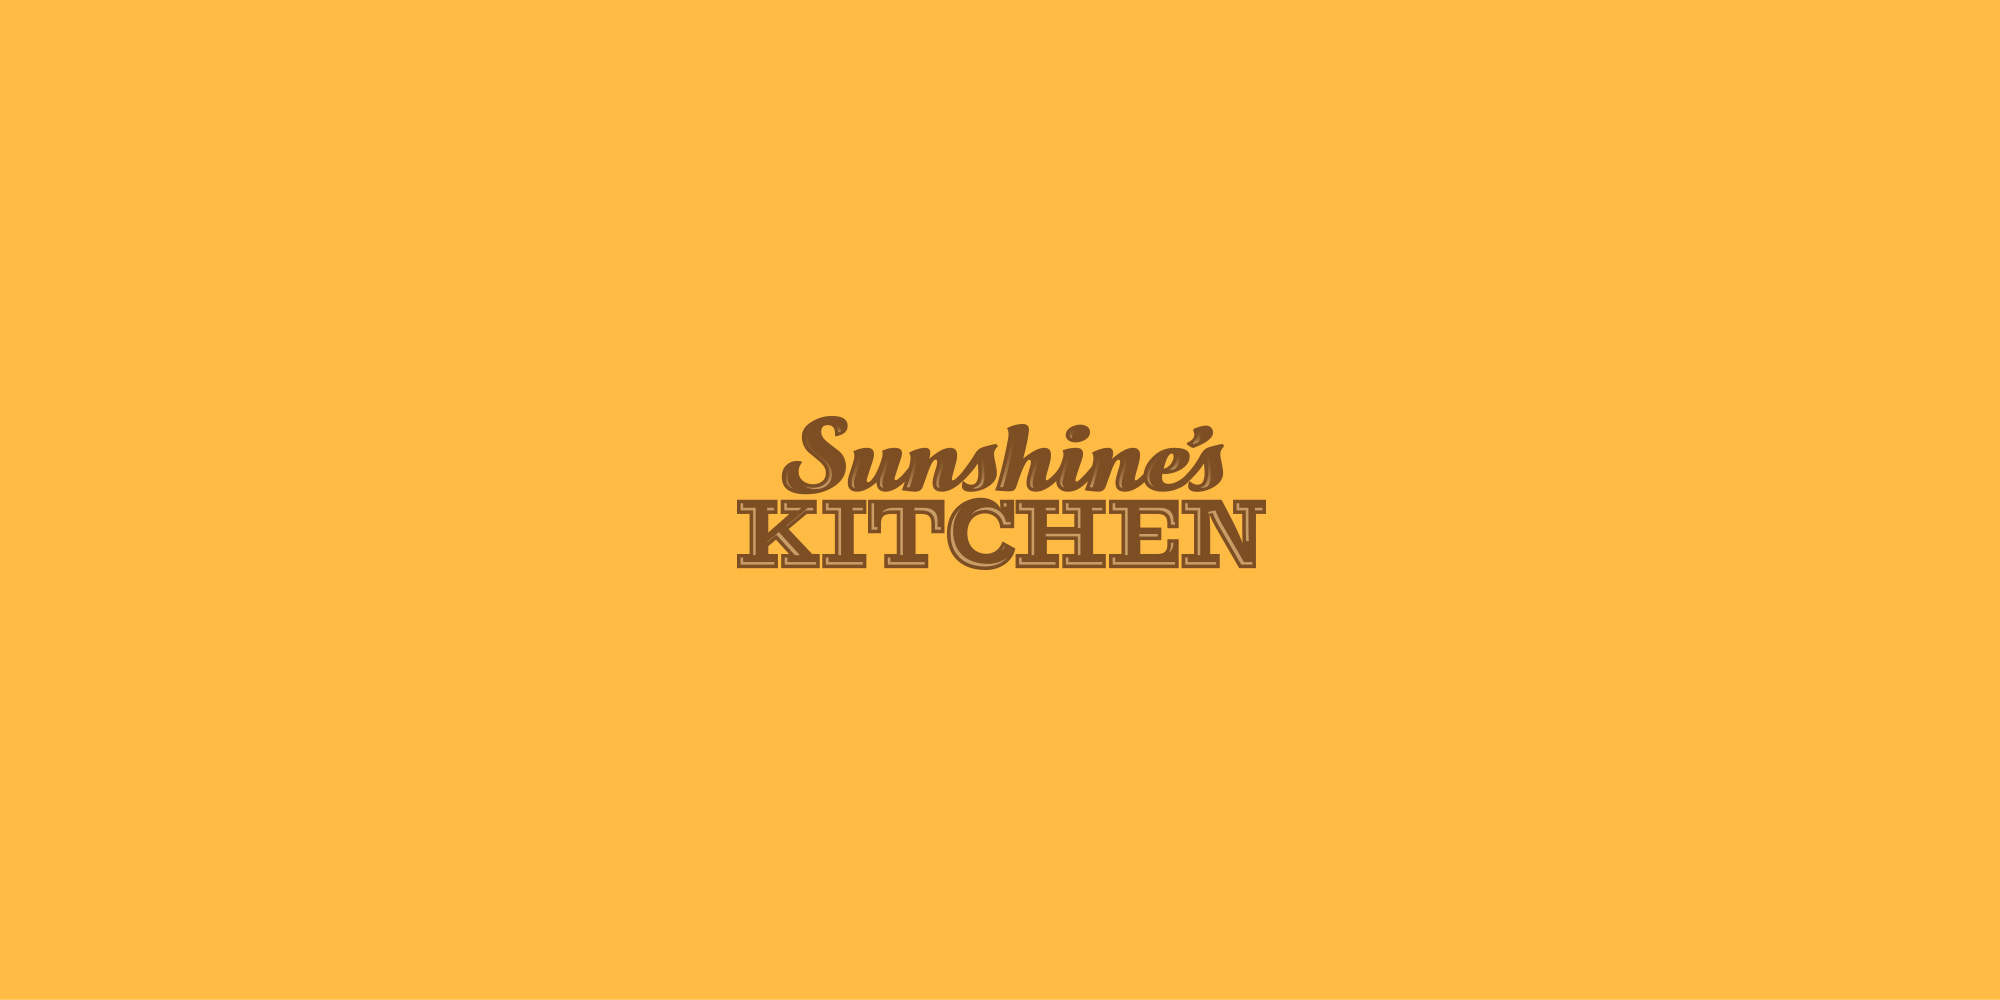 sunshineskitchen